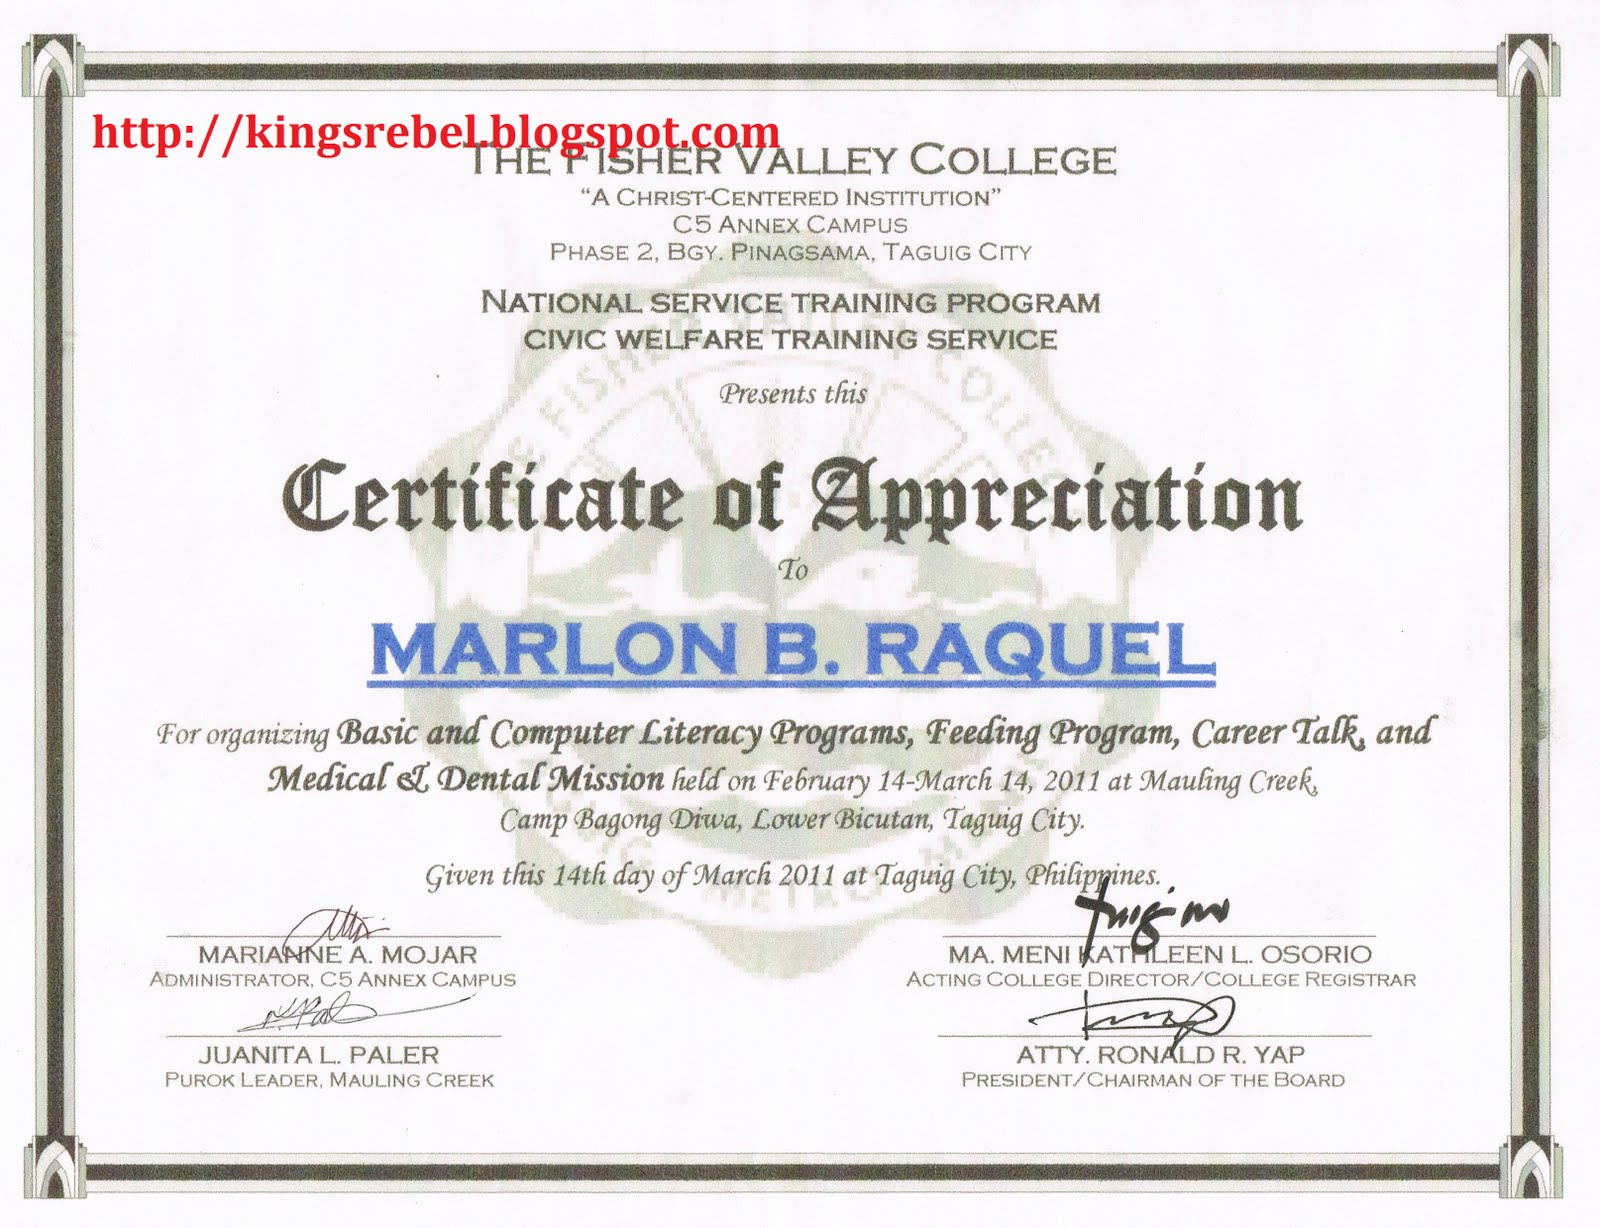 Tidbits and bytes example of certificate of appreciation tidbits and bytes example of certificate of appreciation organizer basic and computer literacy programs medical dental mission and feeding program yadclub